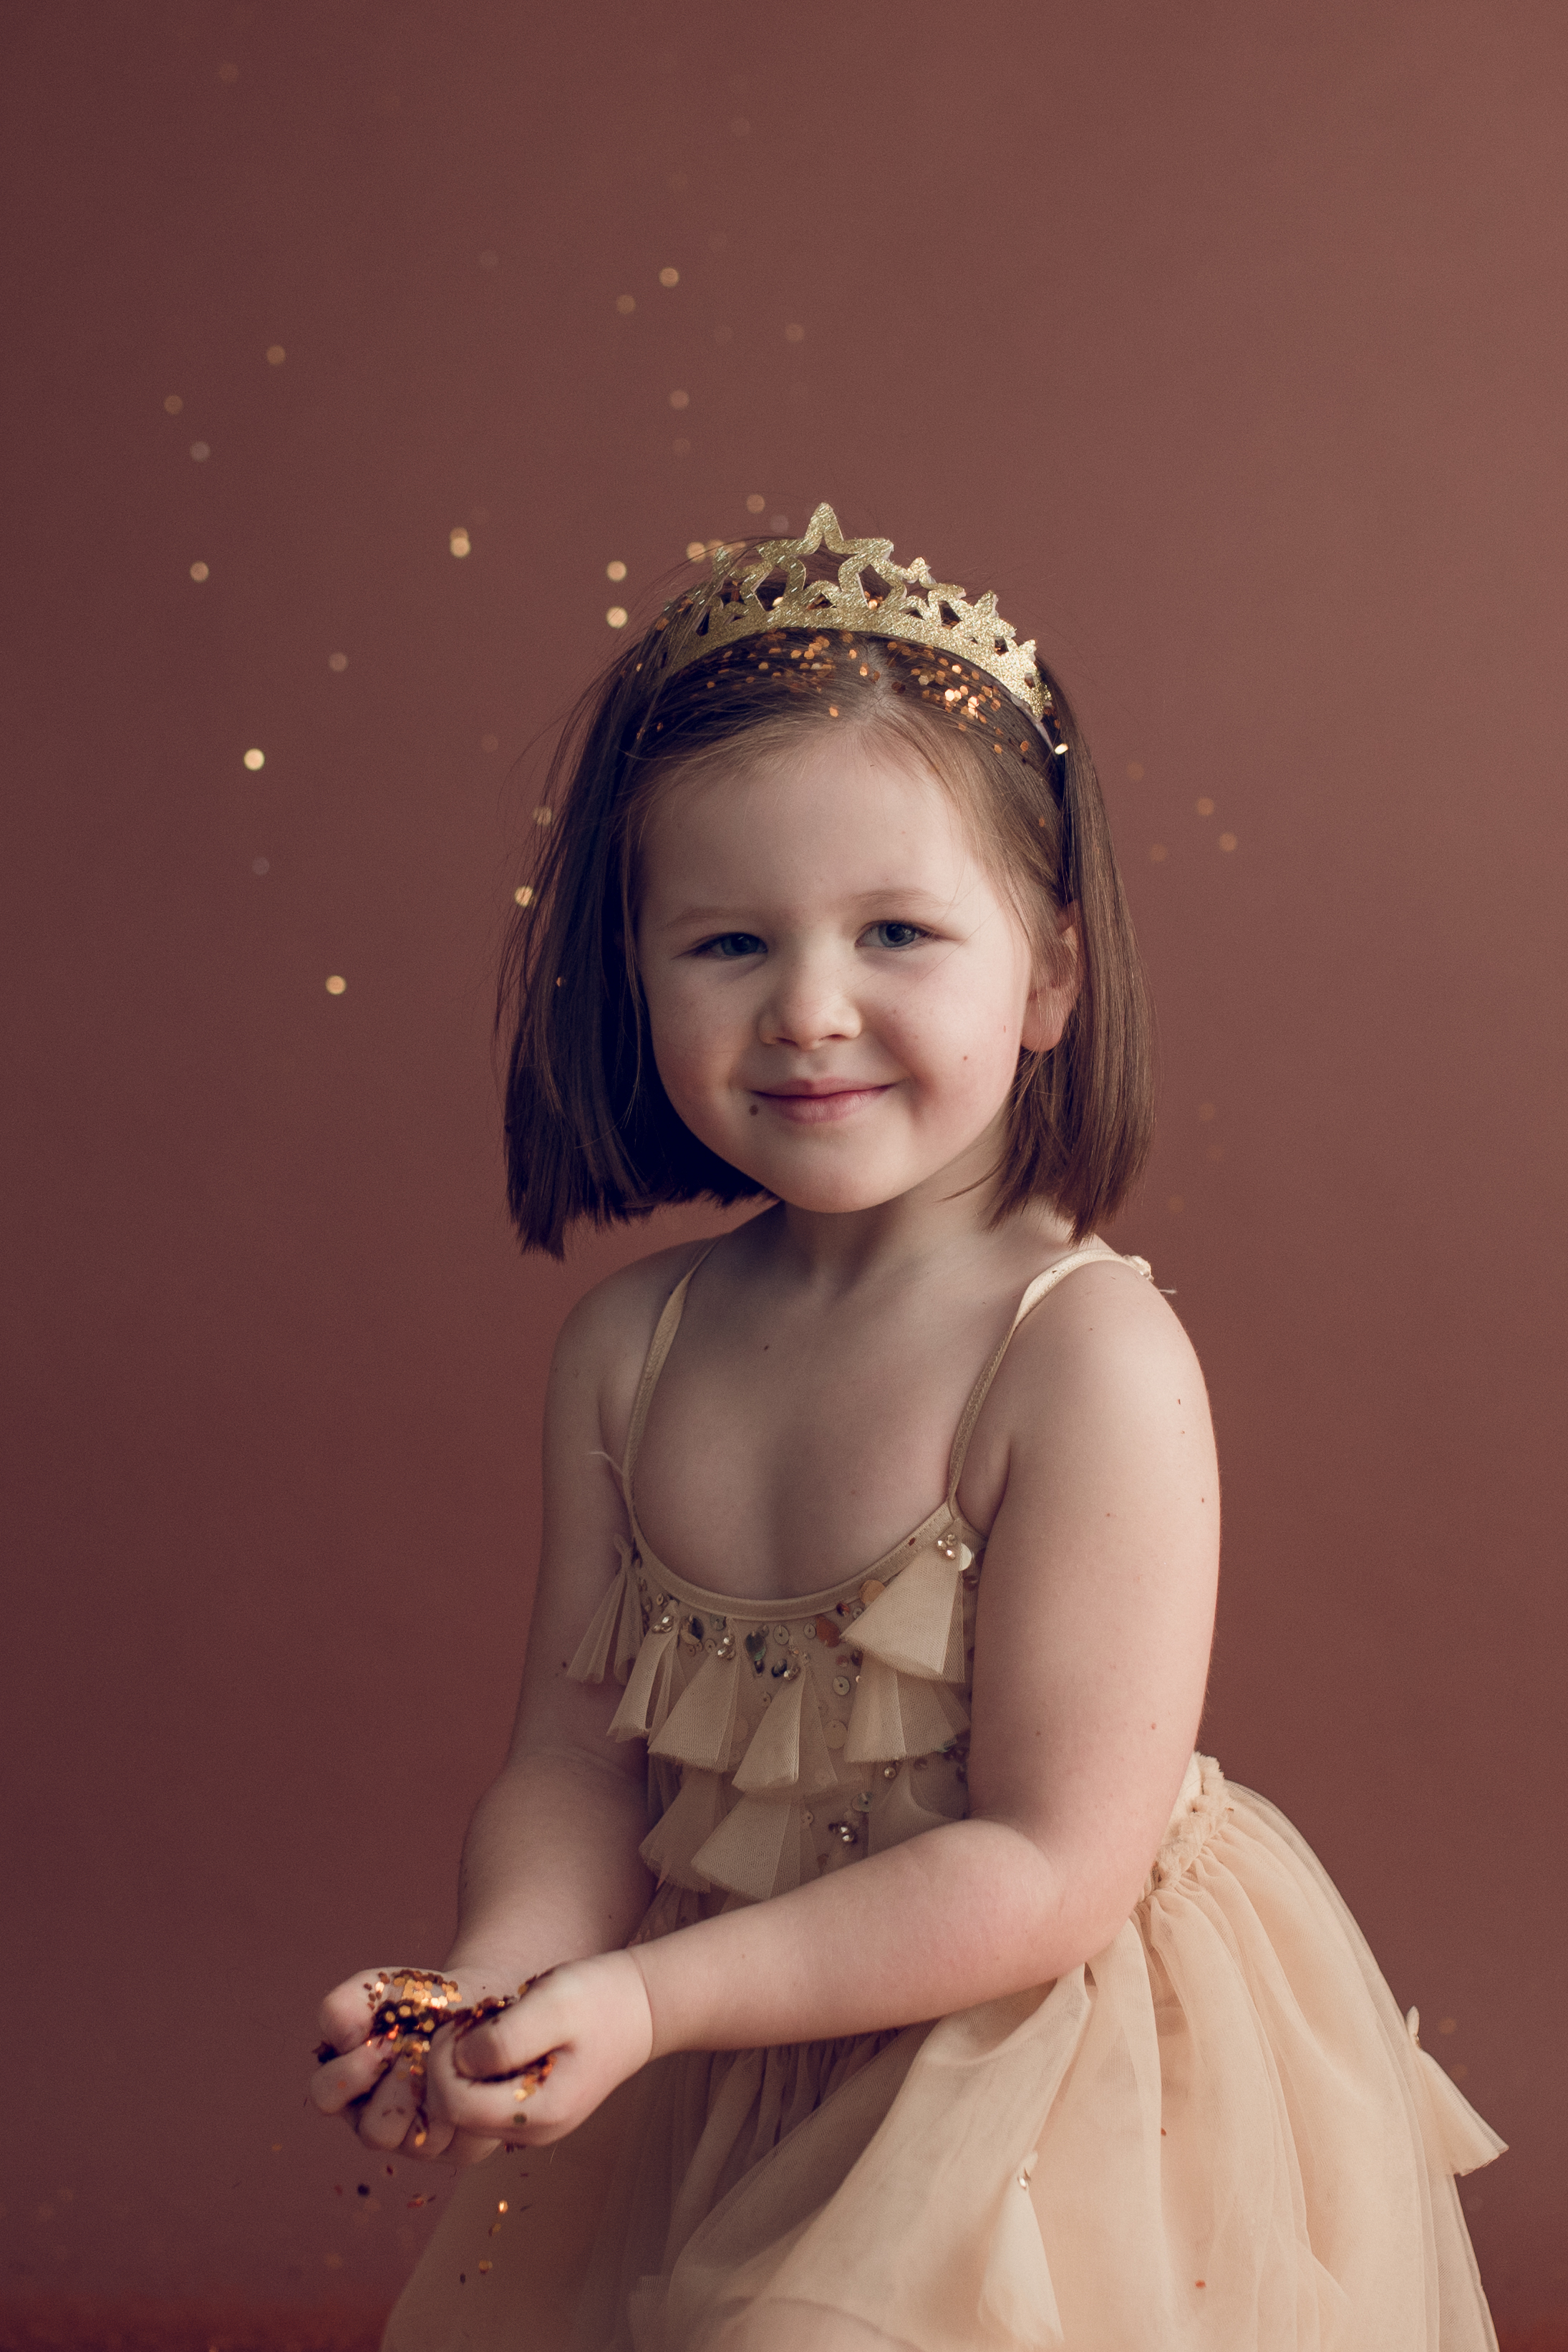 Young girl in pink dress holding glitter